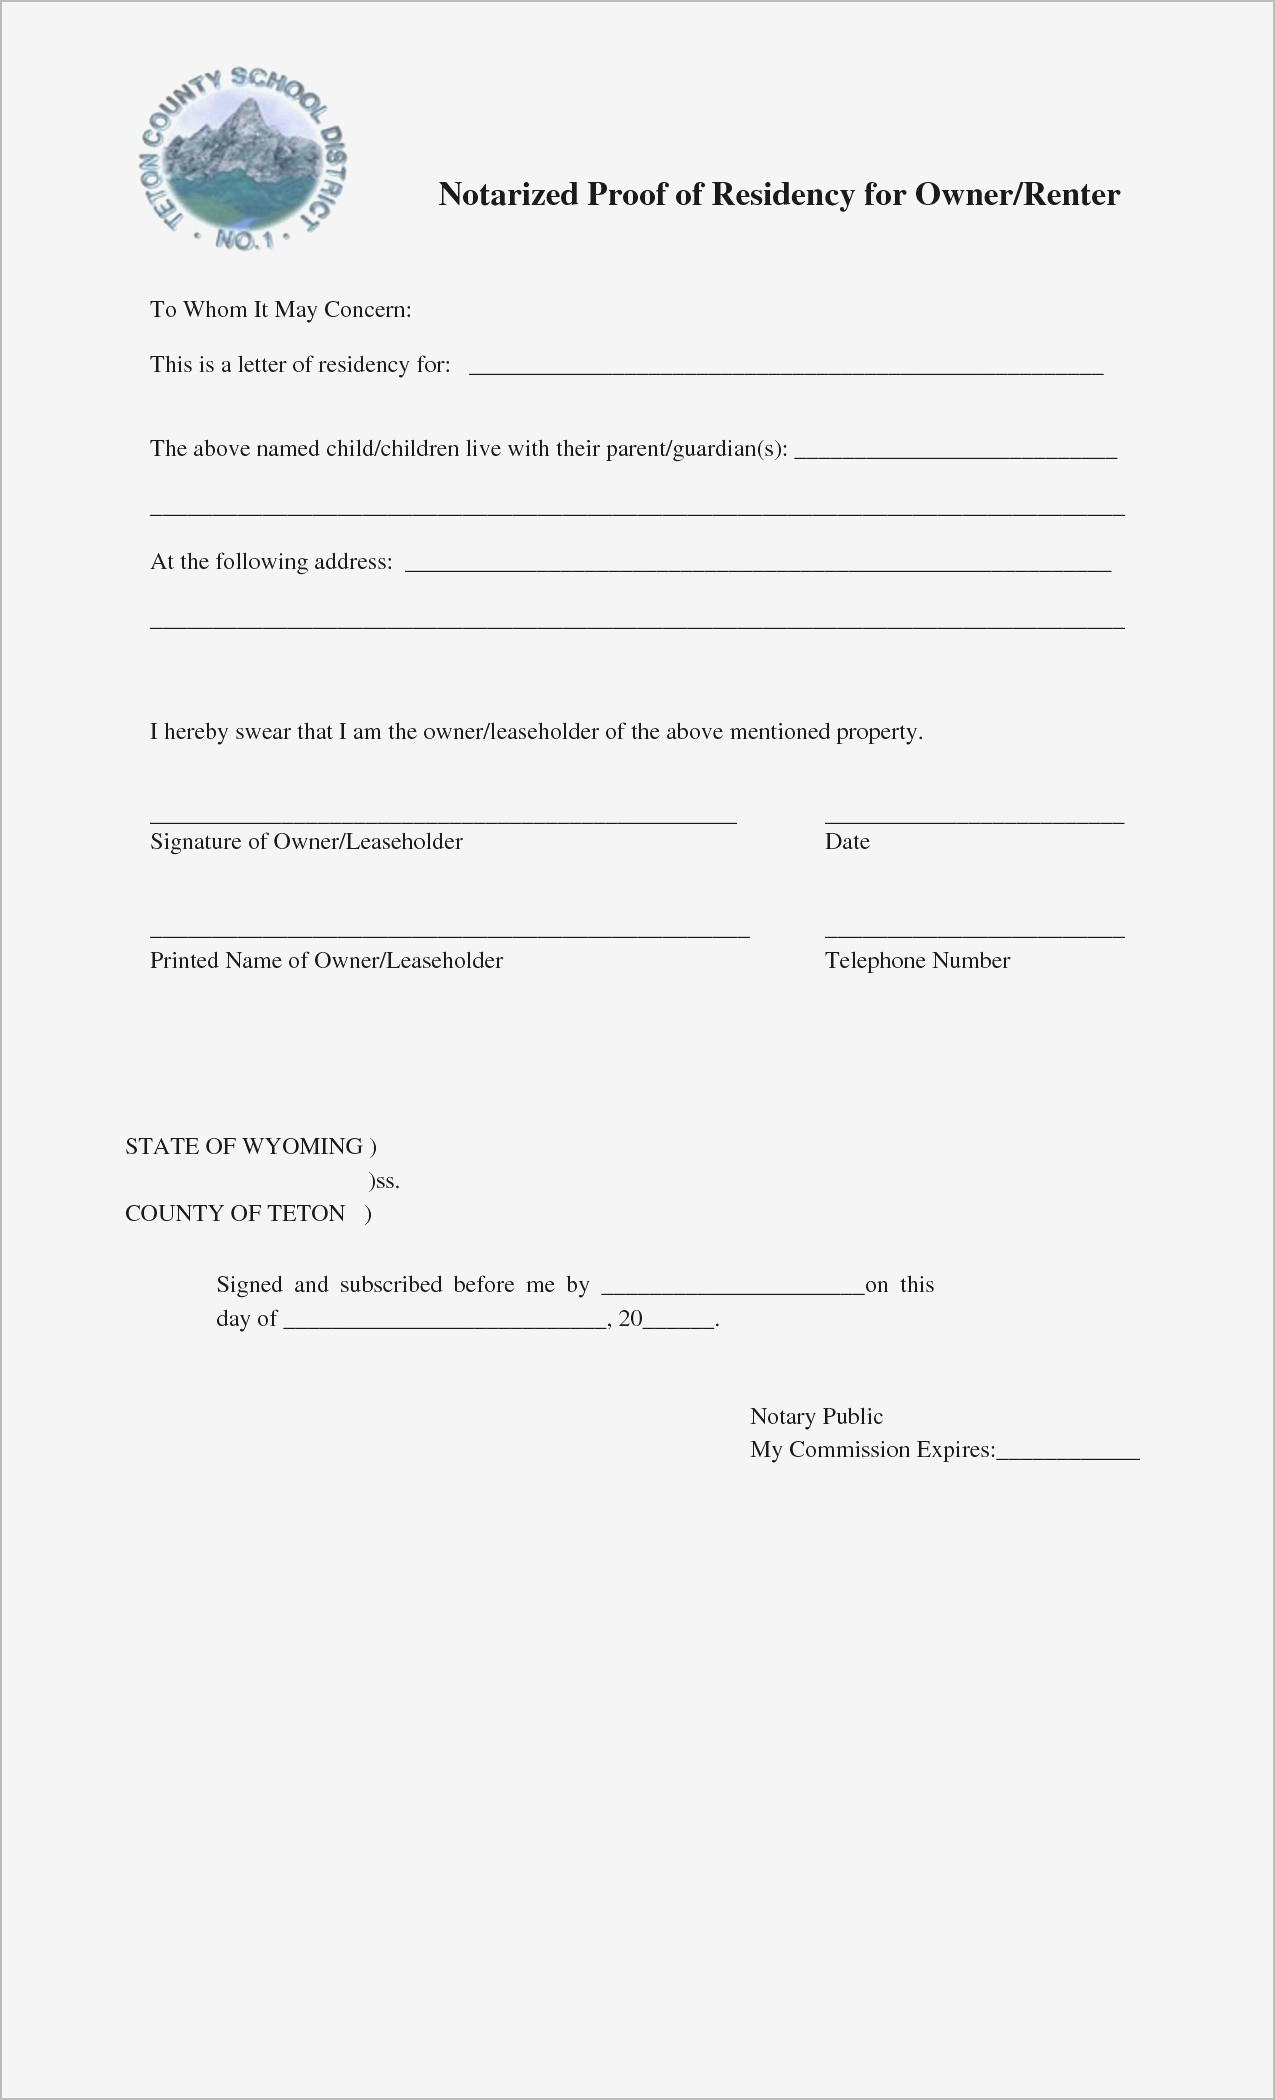 Notarized Letter Template for Residency - Notarized Letter Sample Elegant Notary forms New Printable Notarized